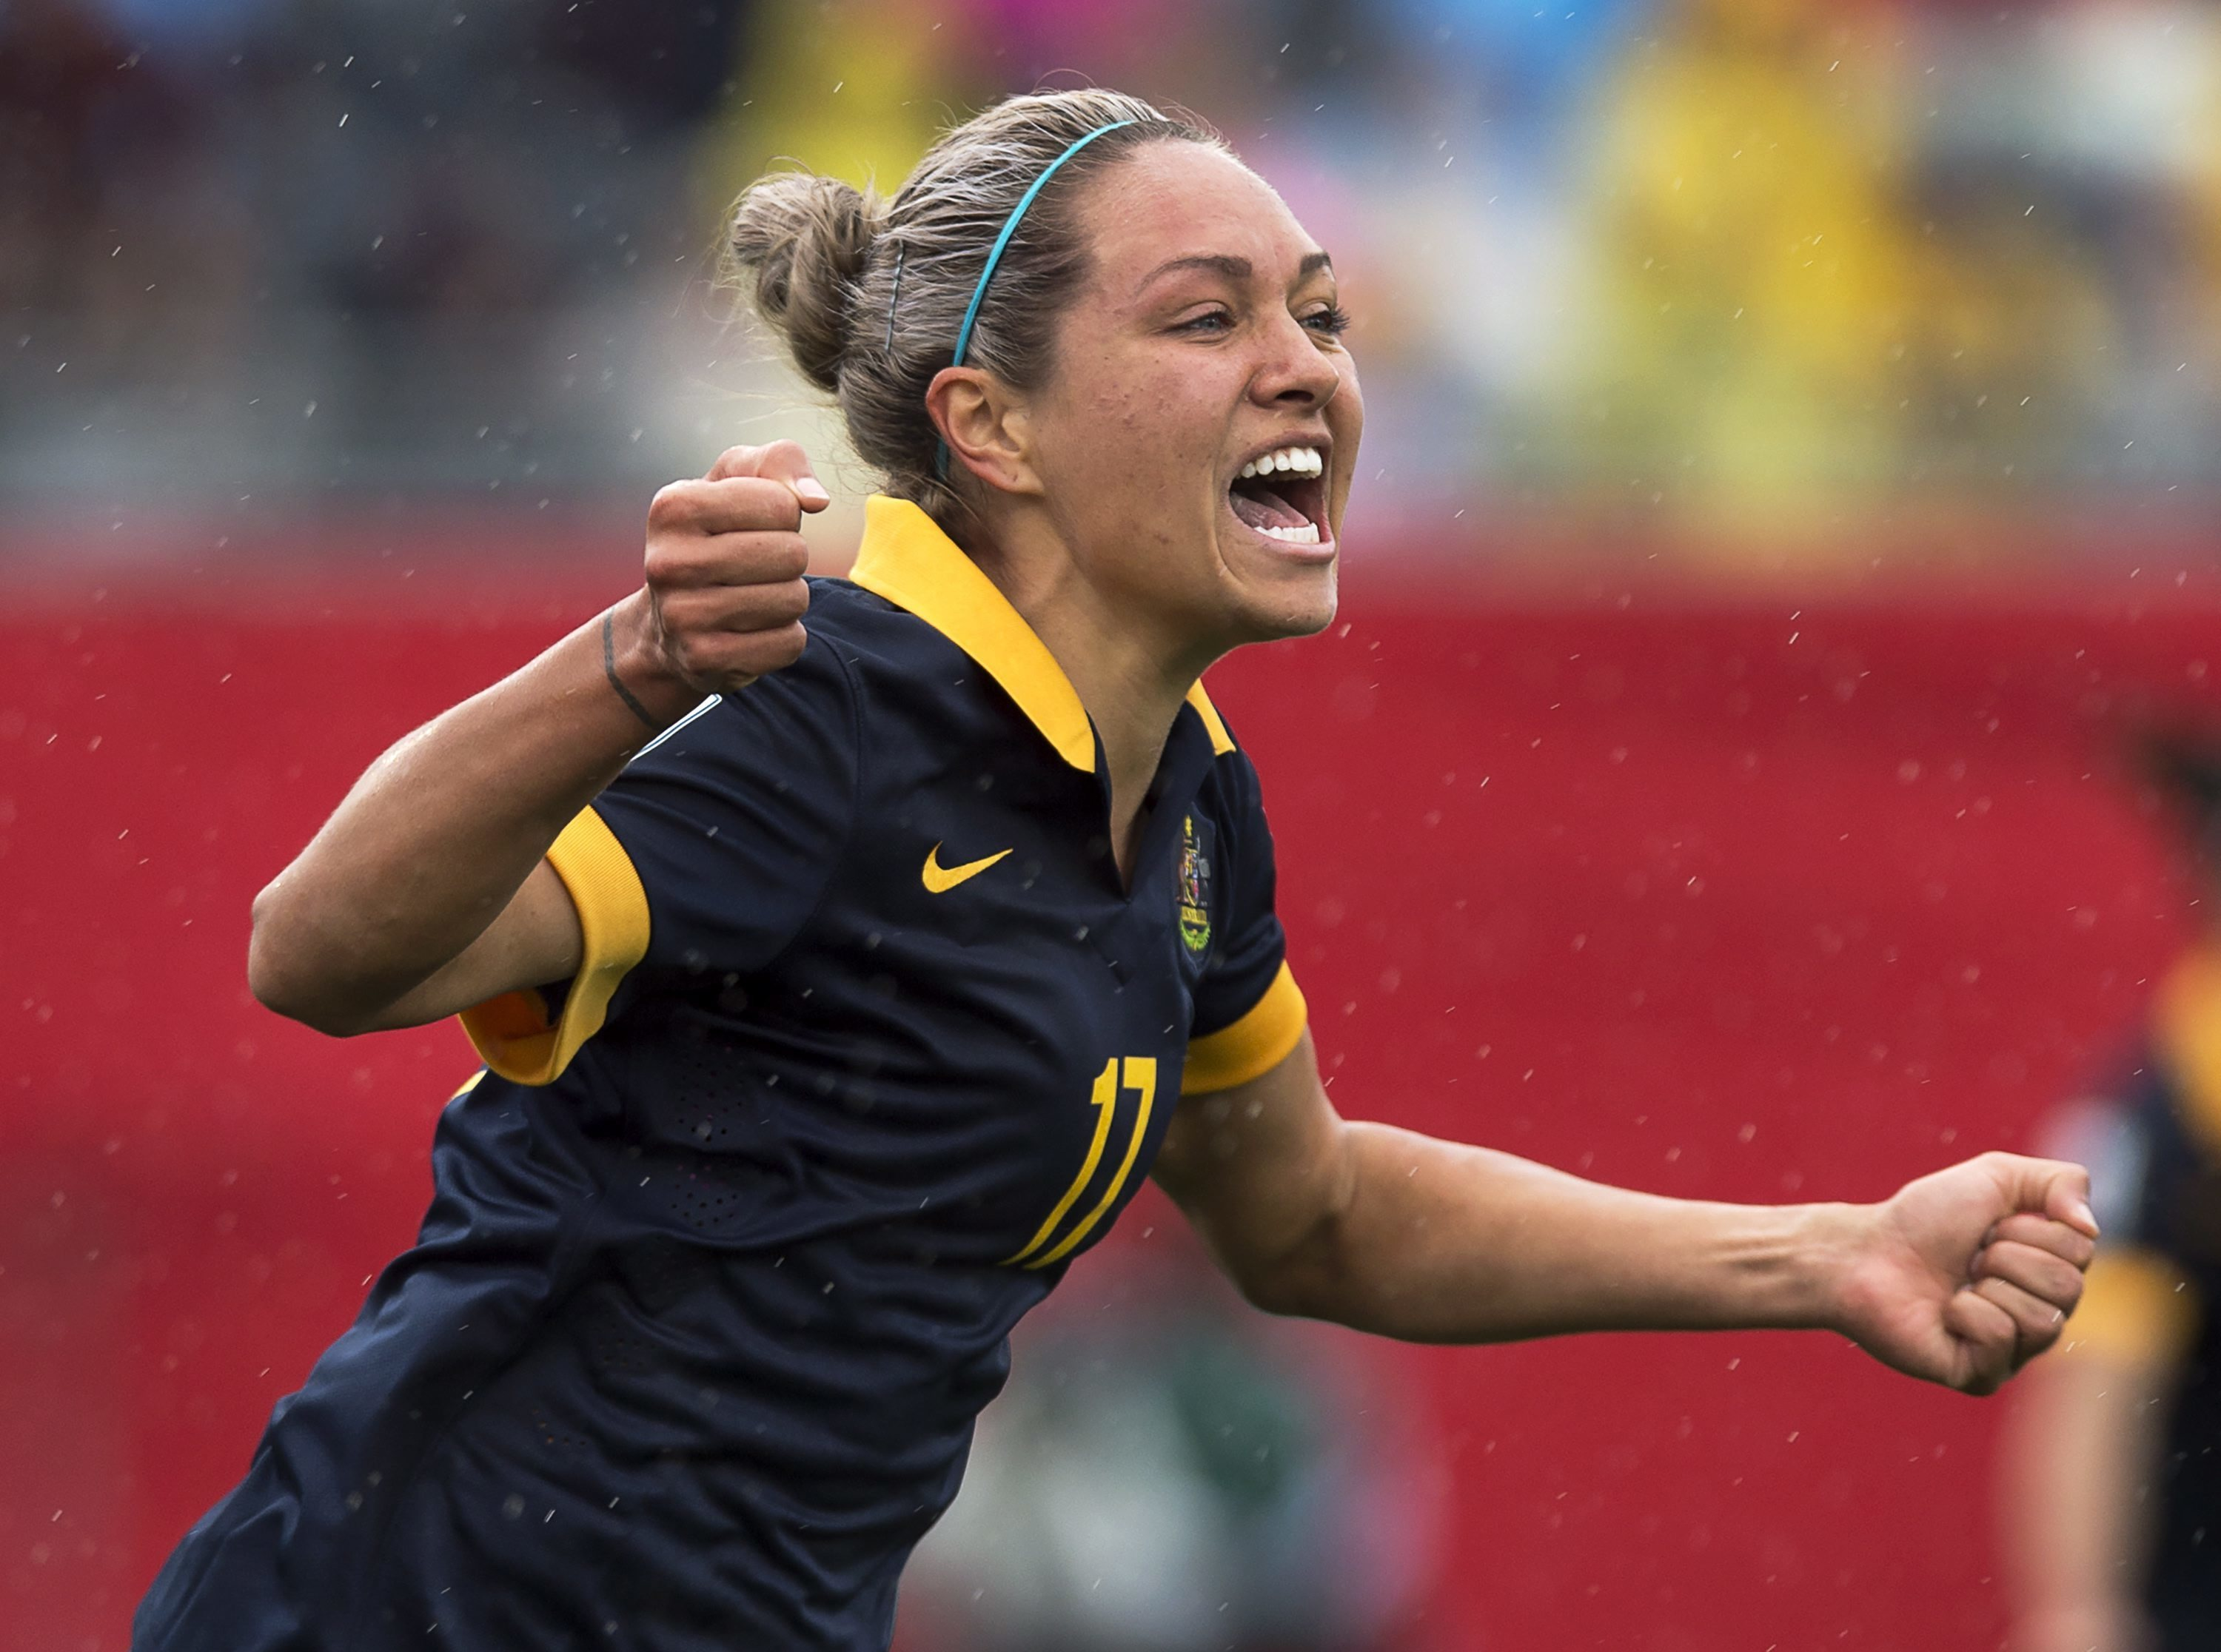 FILE - In this June 21, 2015, file photo, Australia's Kyah Simon celebrates after scoring against Brazil during the second half of a FIFA Women's World Cup soccer game in Moncton, New Brunswick. Long before the U.S. womens soccer team filed a federal comp